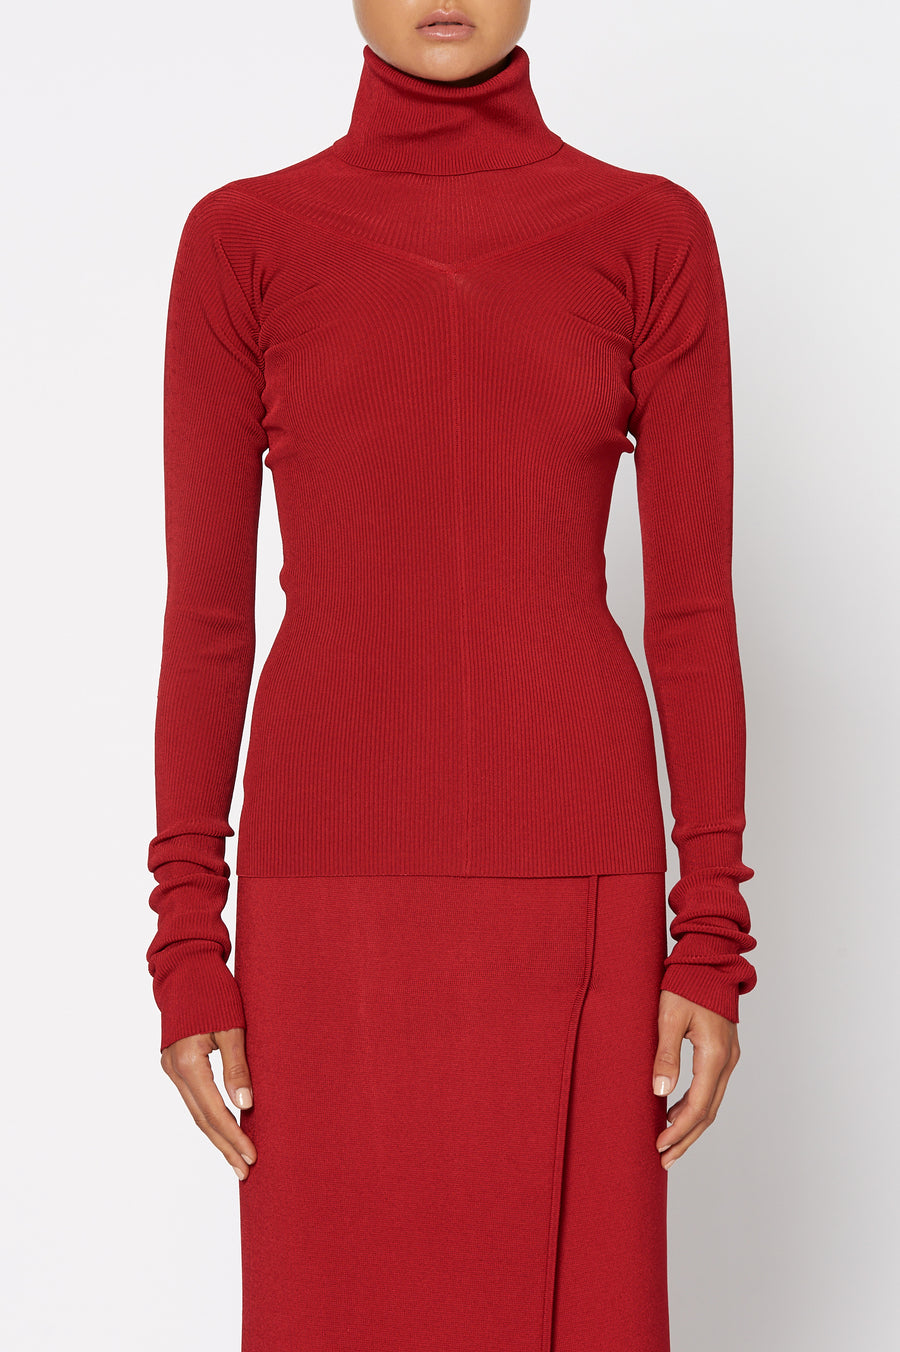 Satin Rib Top, high turtle neck, long sleeves, rib detail around the neckline, Color Red